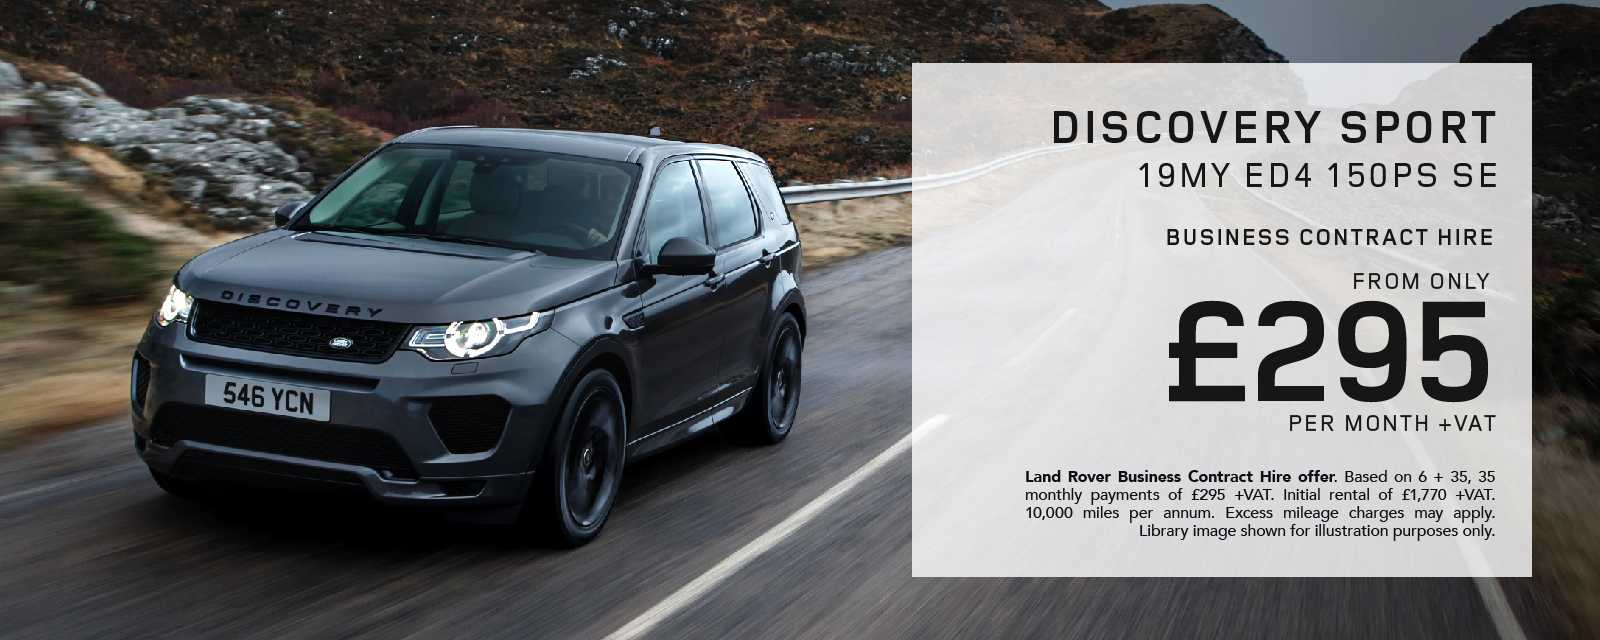 Land Rover Discovery Sport Business Contract Hire Offer